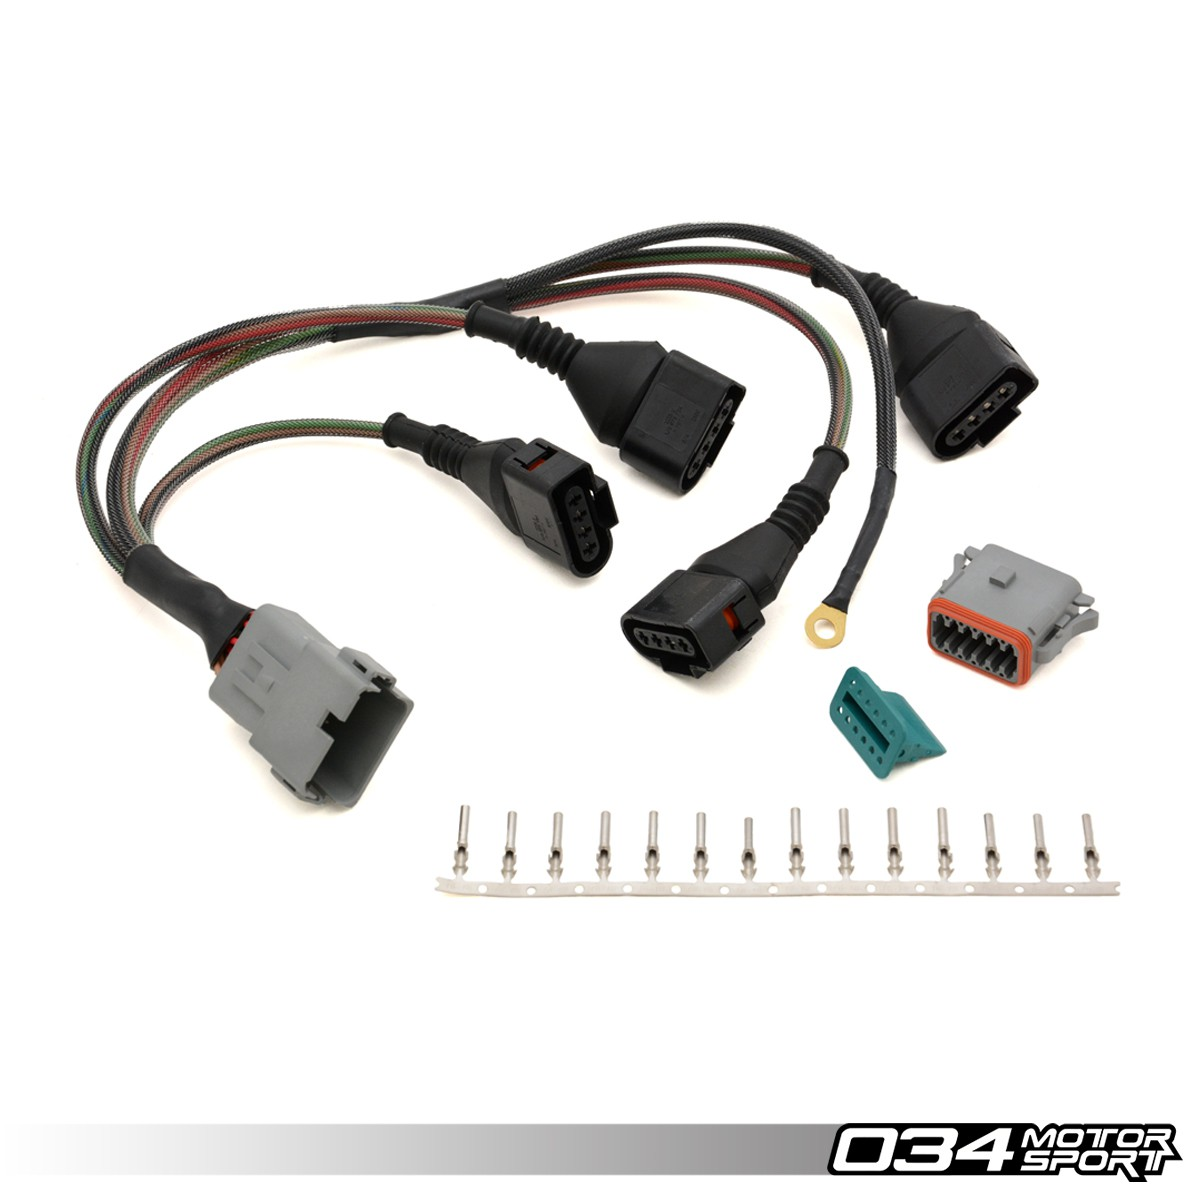 repair update harness audi volkswagen 18t with 4 wire coils 034motorsport 034 701 0004 2 repair update harness, audi volkswagen 1 8t with 4 wire coils how to repair a wiring harness at honlapkeszites.co